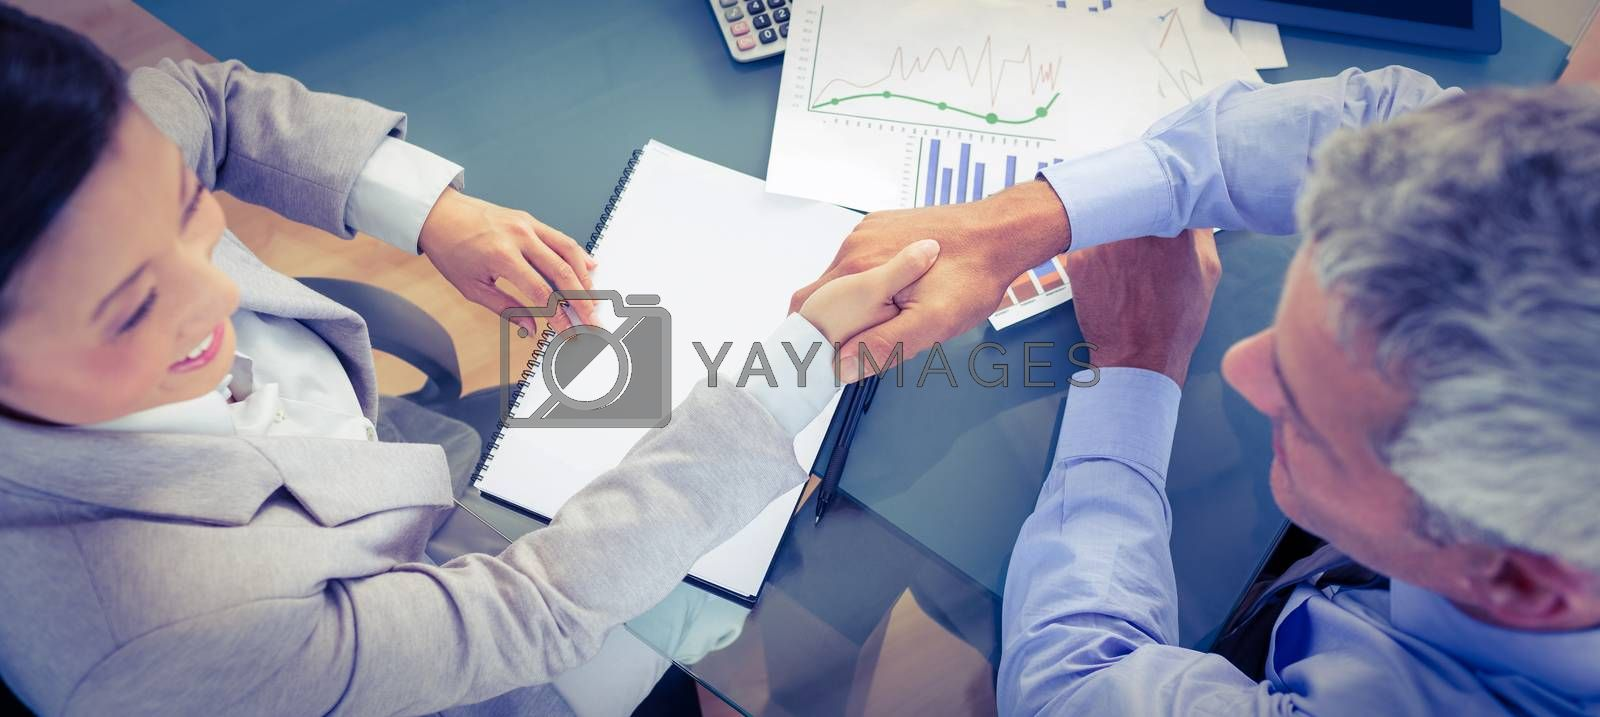 Royalty free image of Business people shaking hands  by Wavebreakmedia